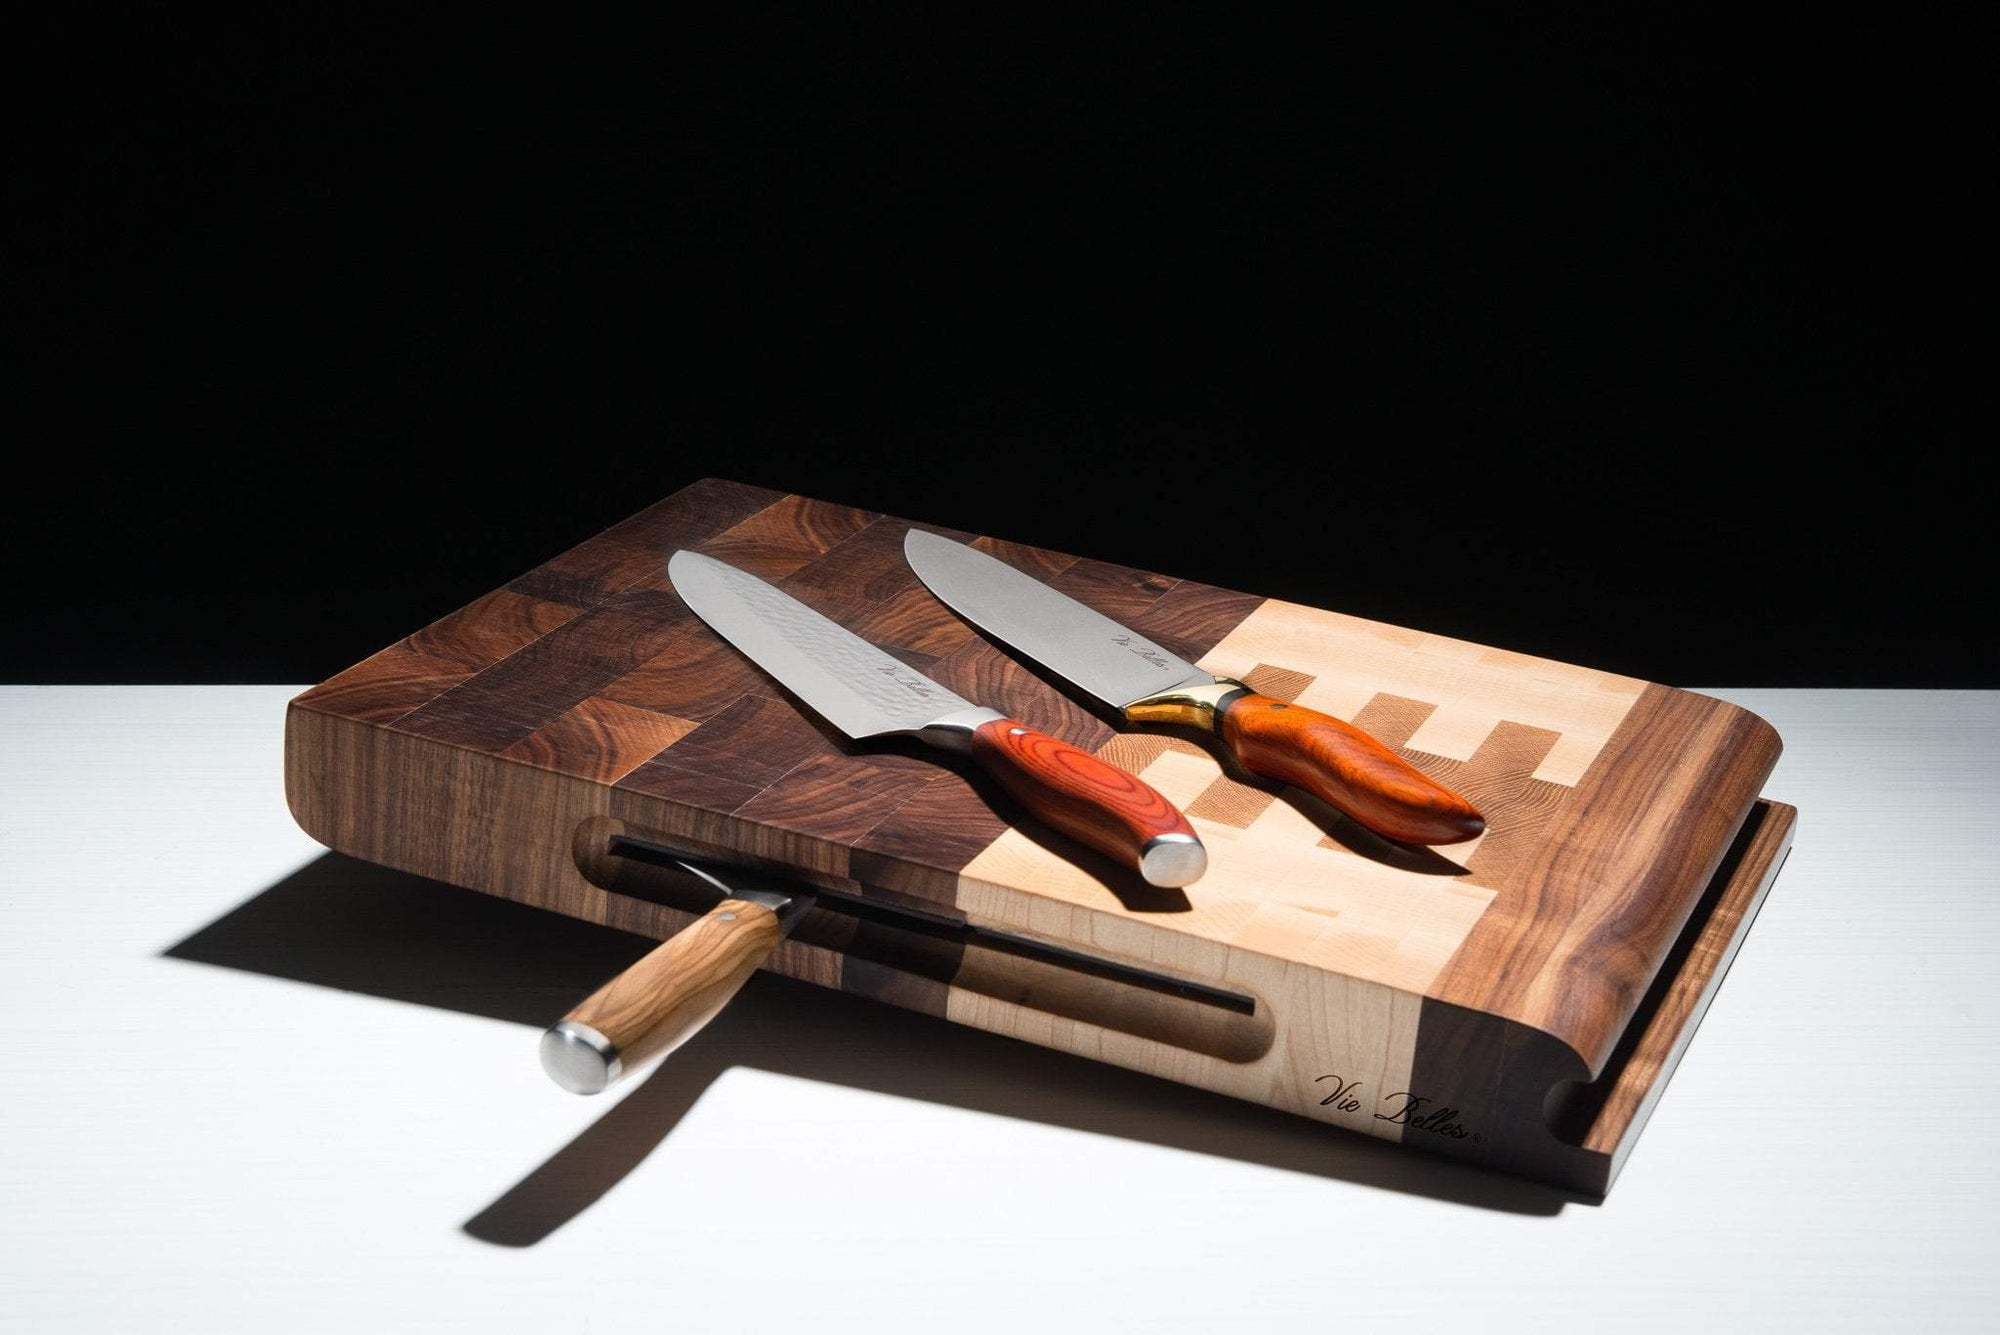 Essential Things You Should Know About Cutting Boards